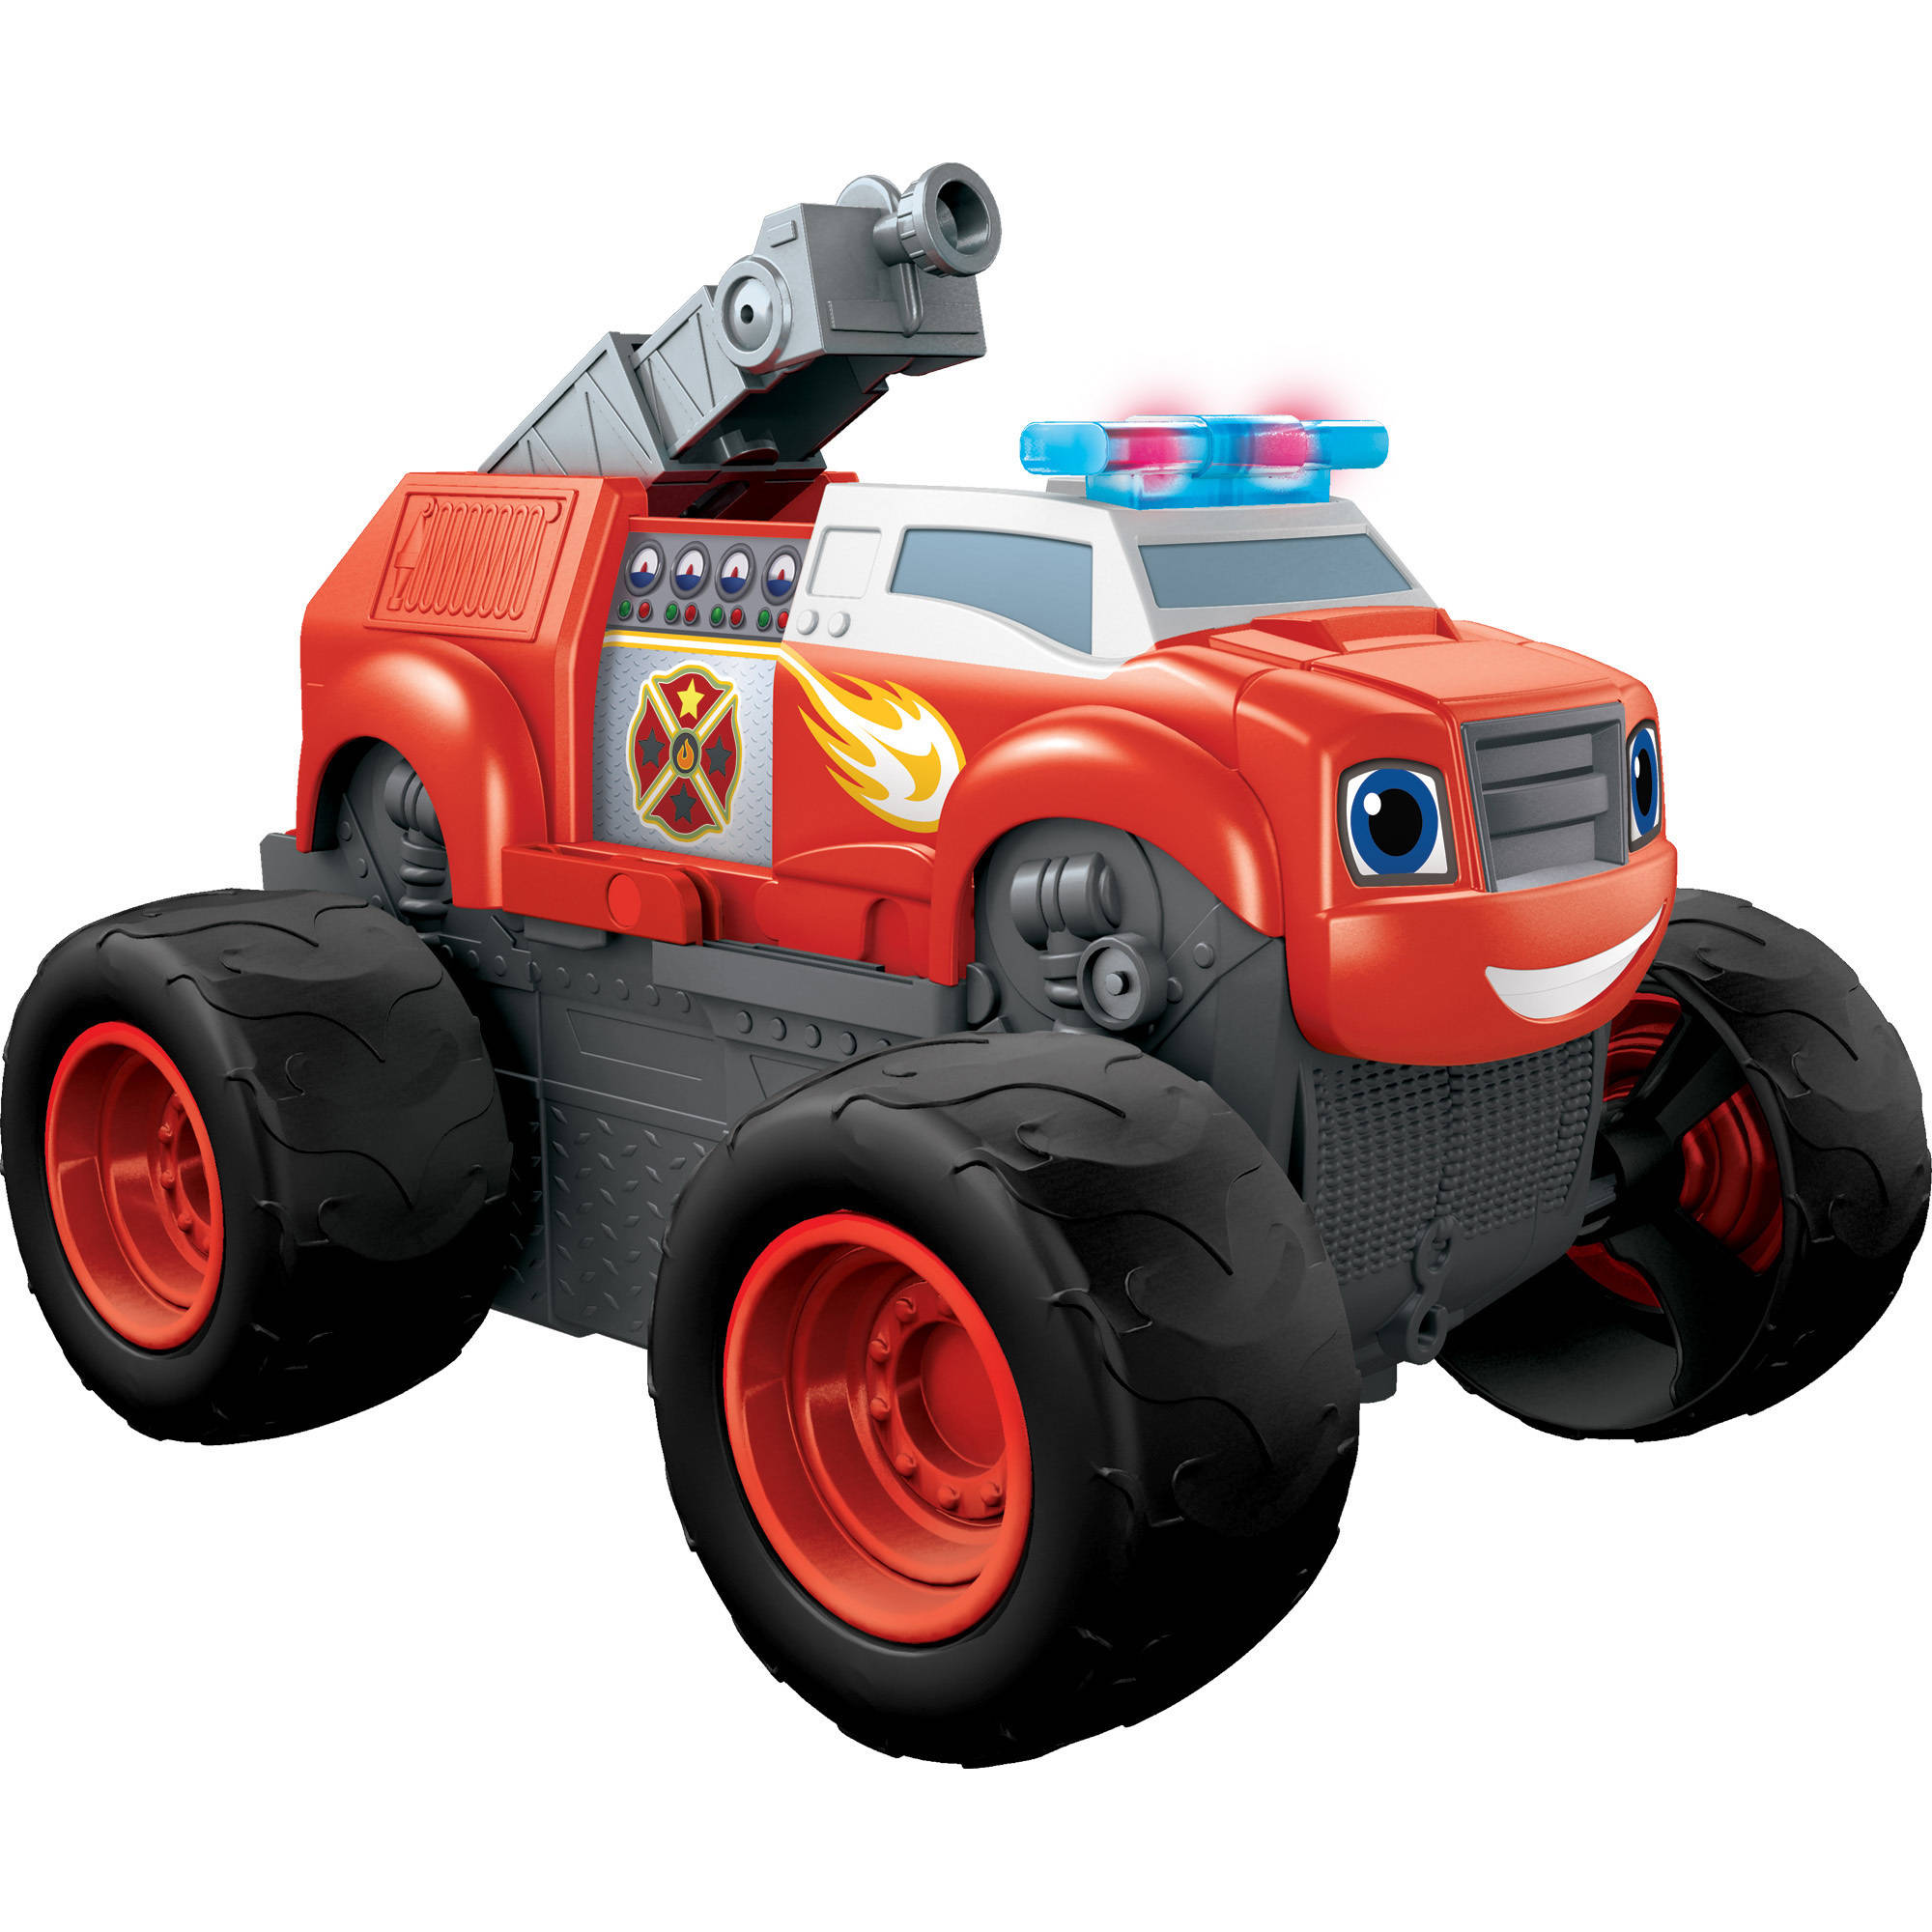 Nickelodeon Blaze and the Monster Machines Transforming Fire Truck Blaze by Fisher-Price